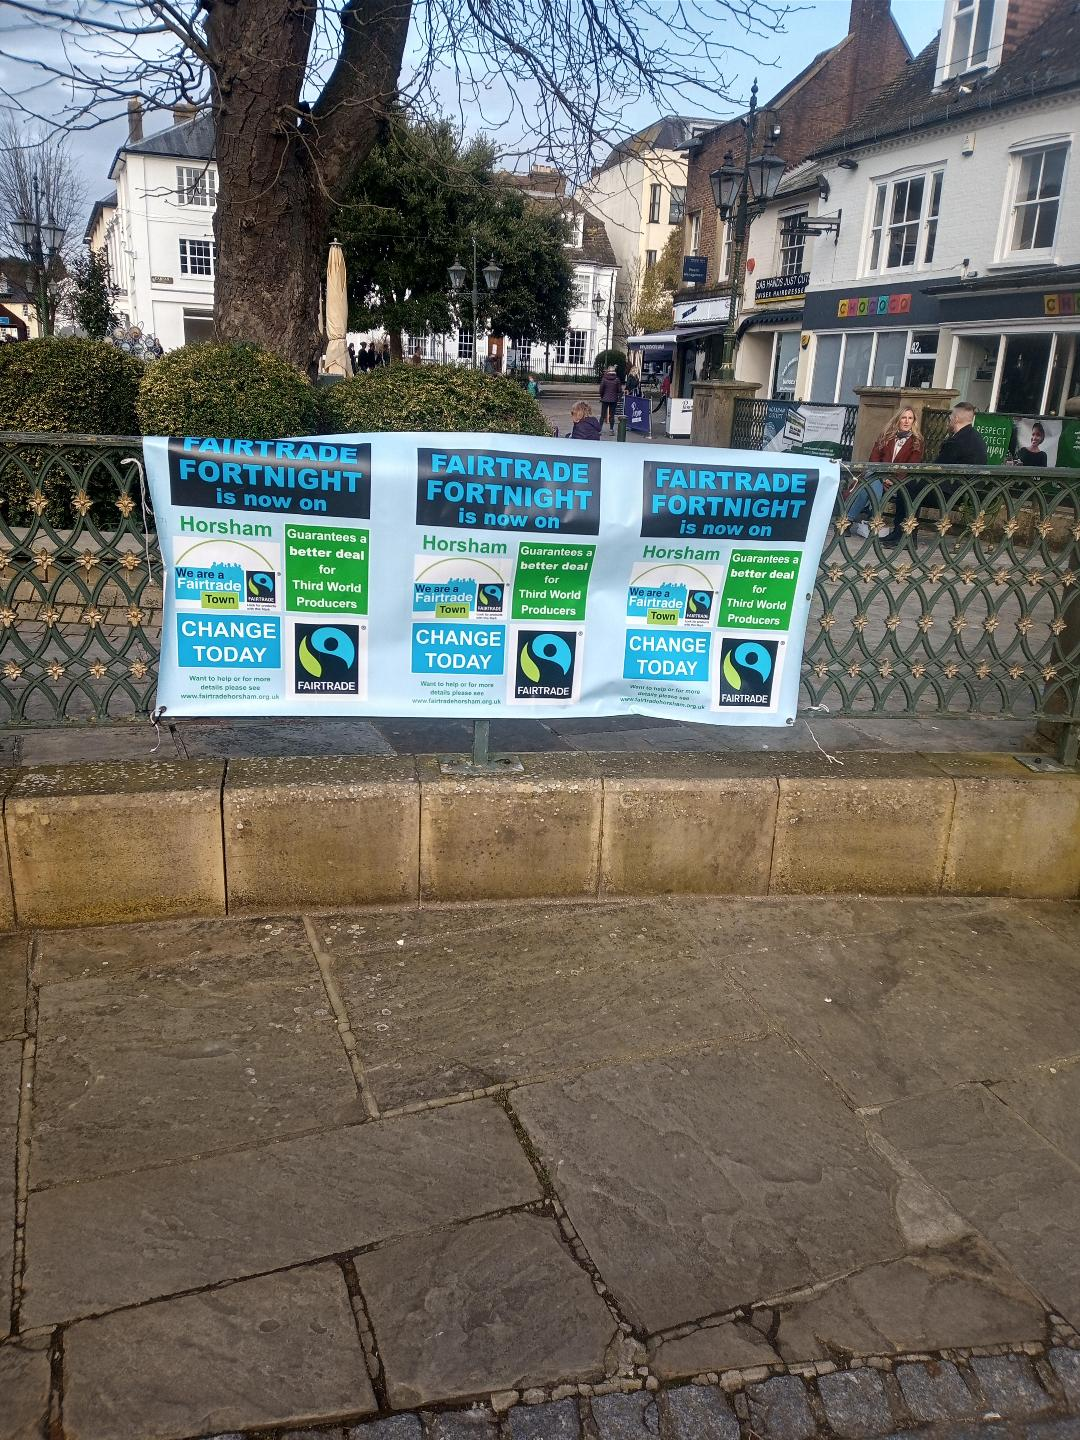 Fairtrade Fortnight posters in Horsham Carfax